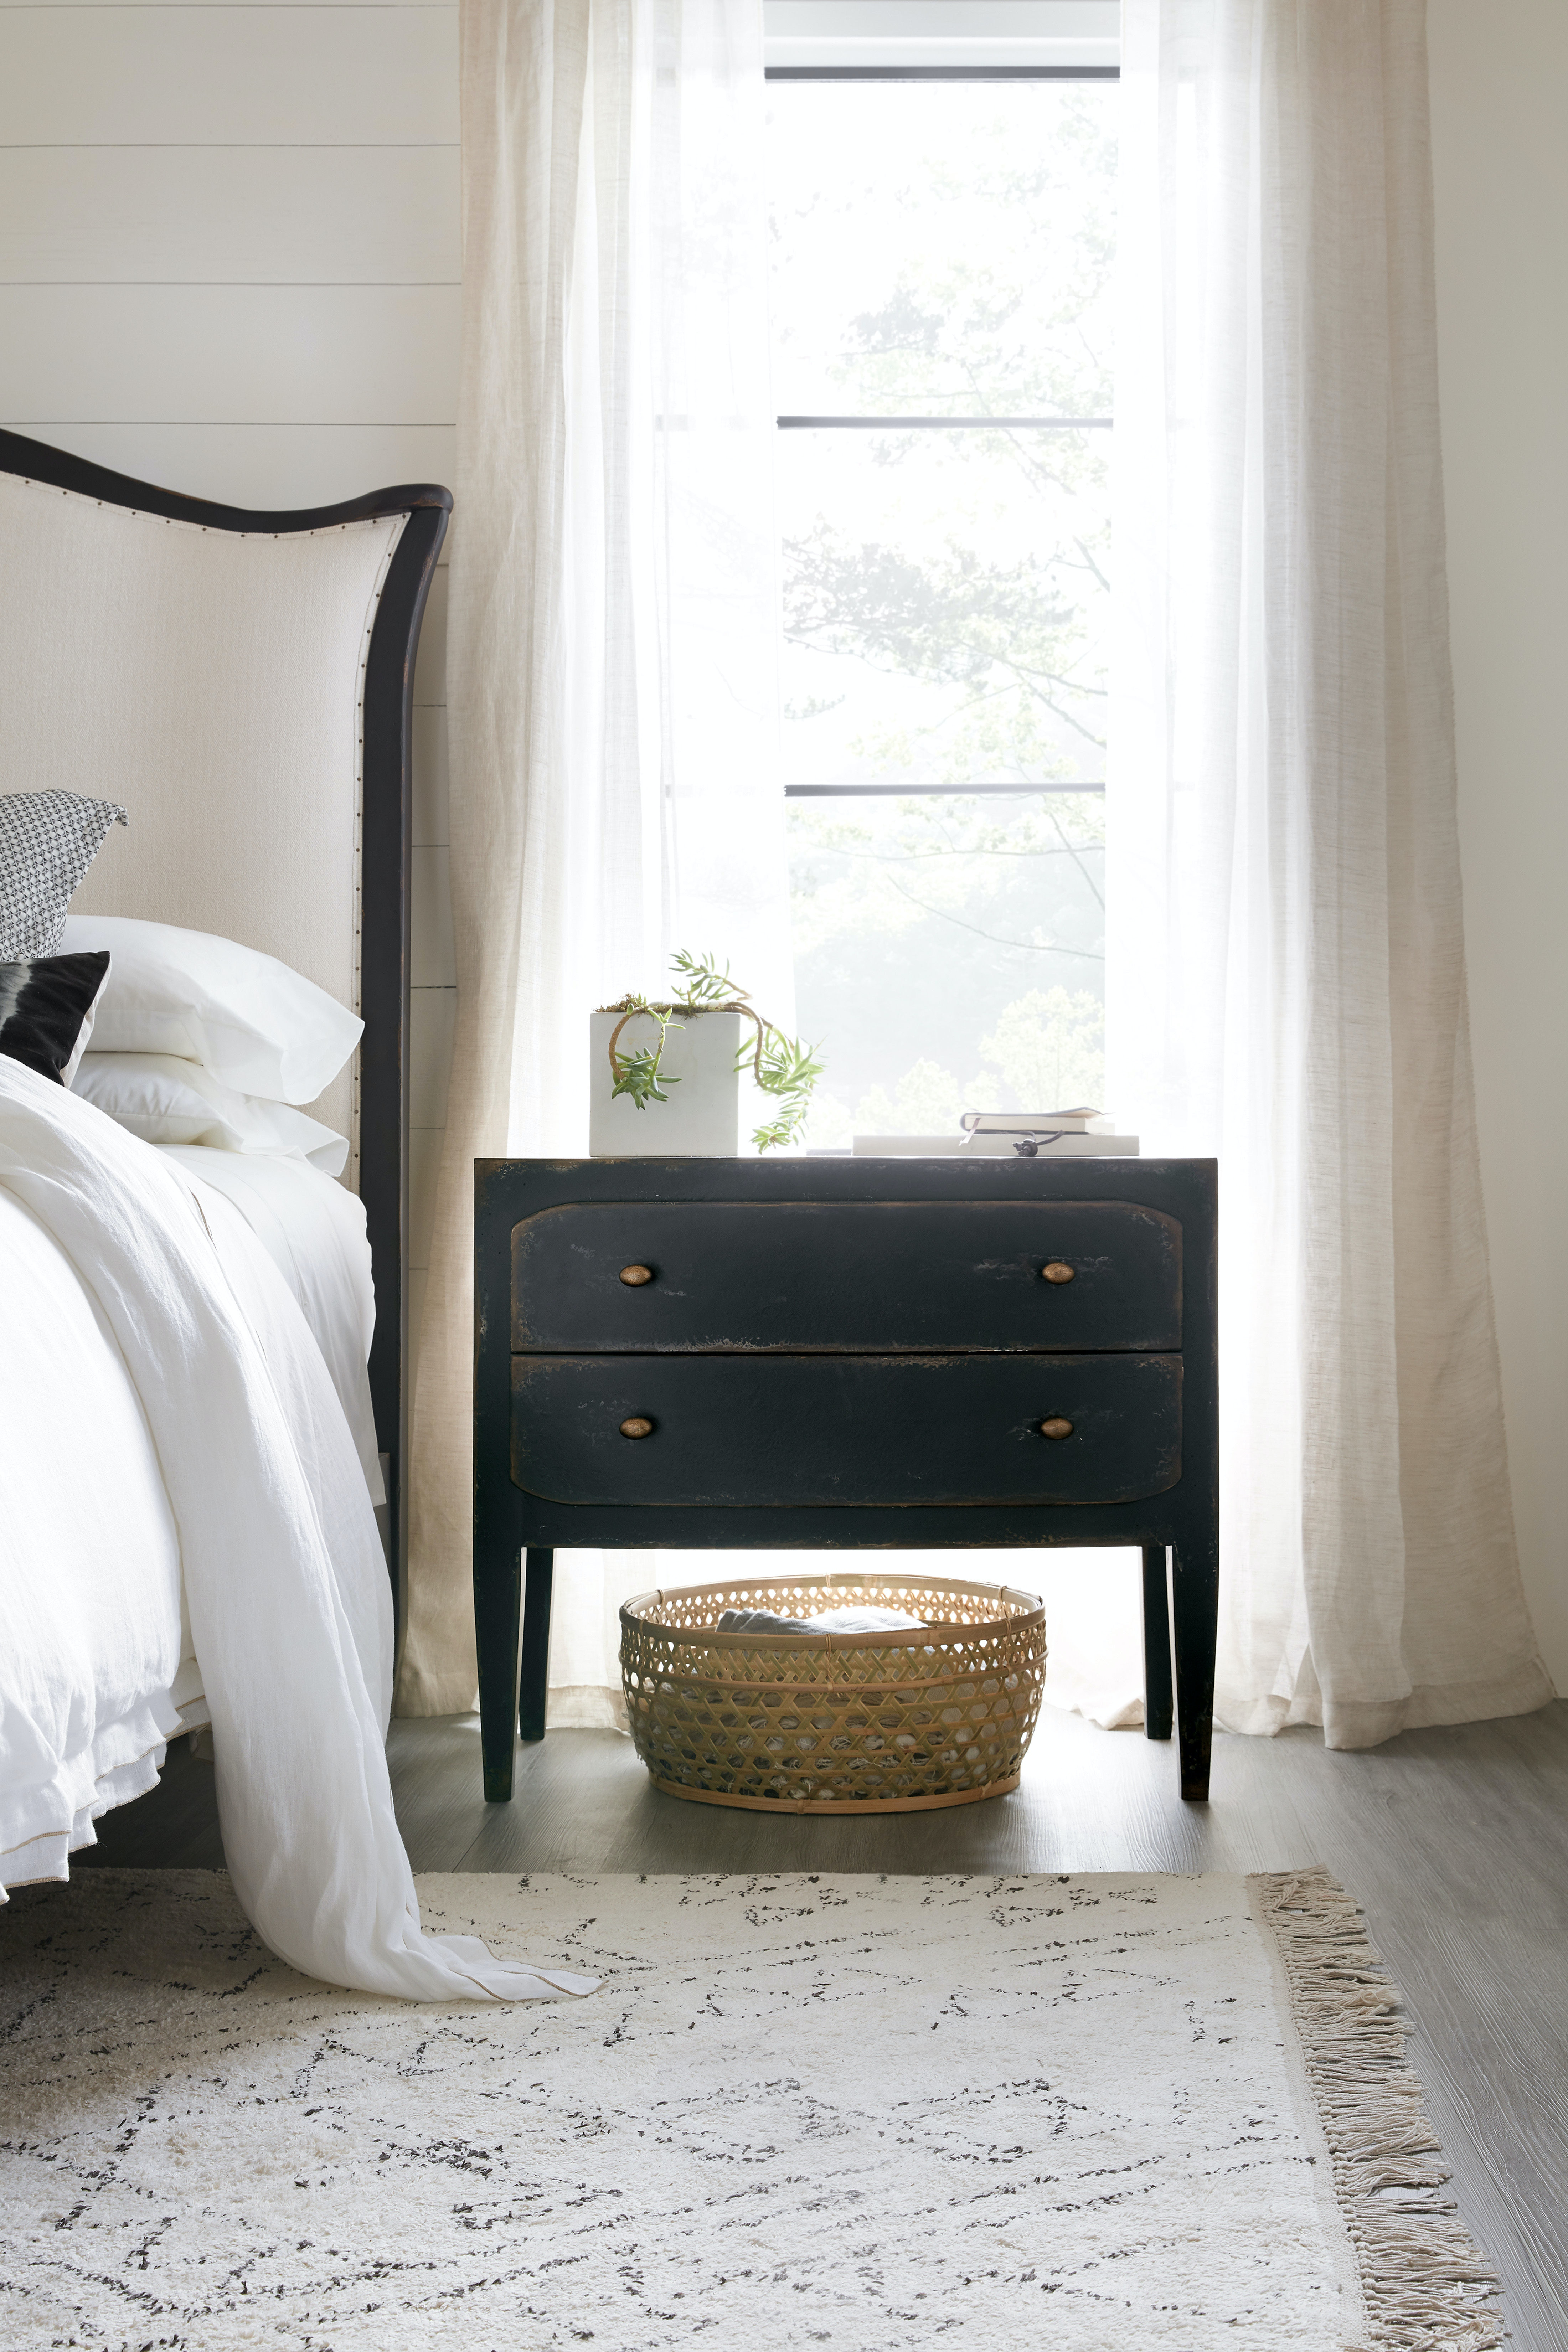 Hooker Furniture Bedroom Ciao Bella Two-Drawer Nightstand ...